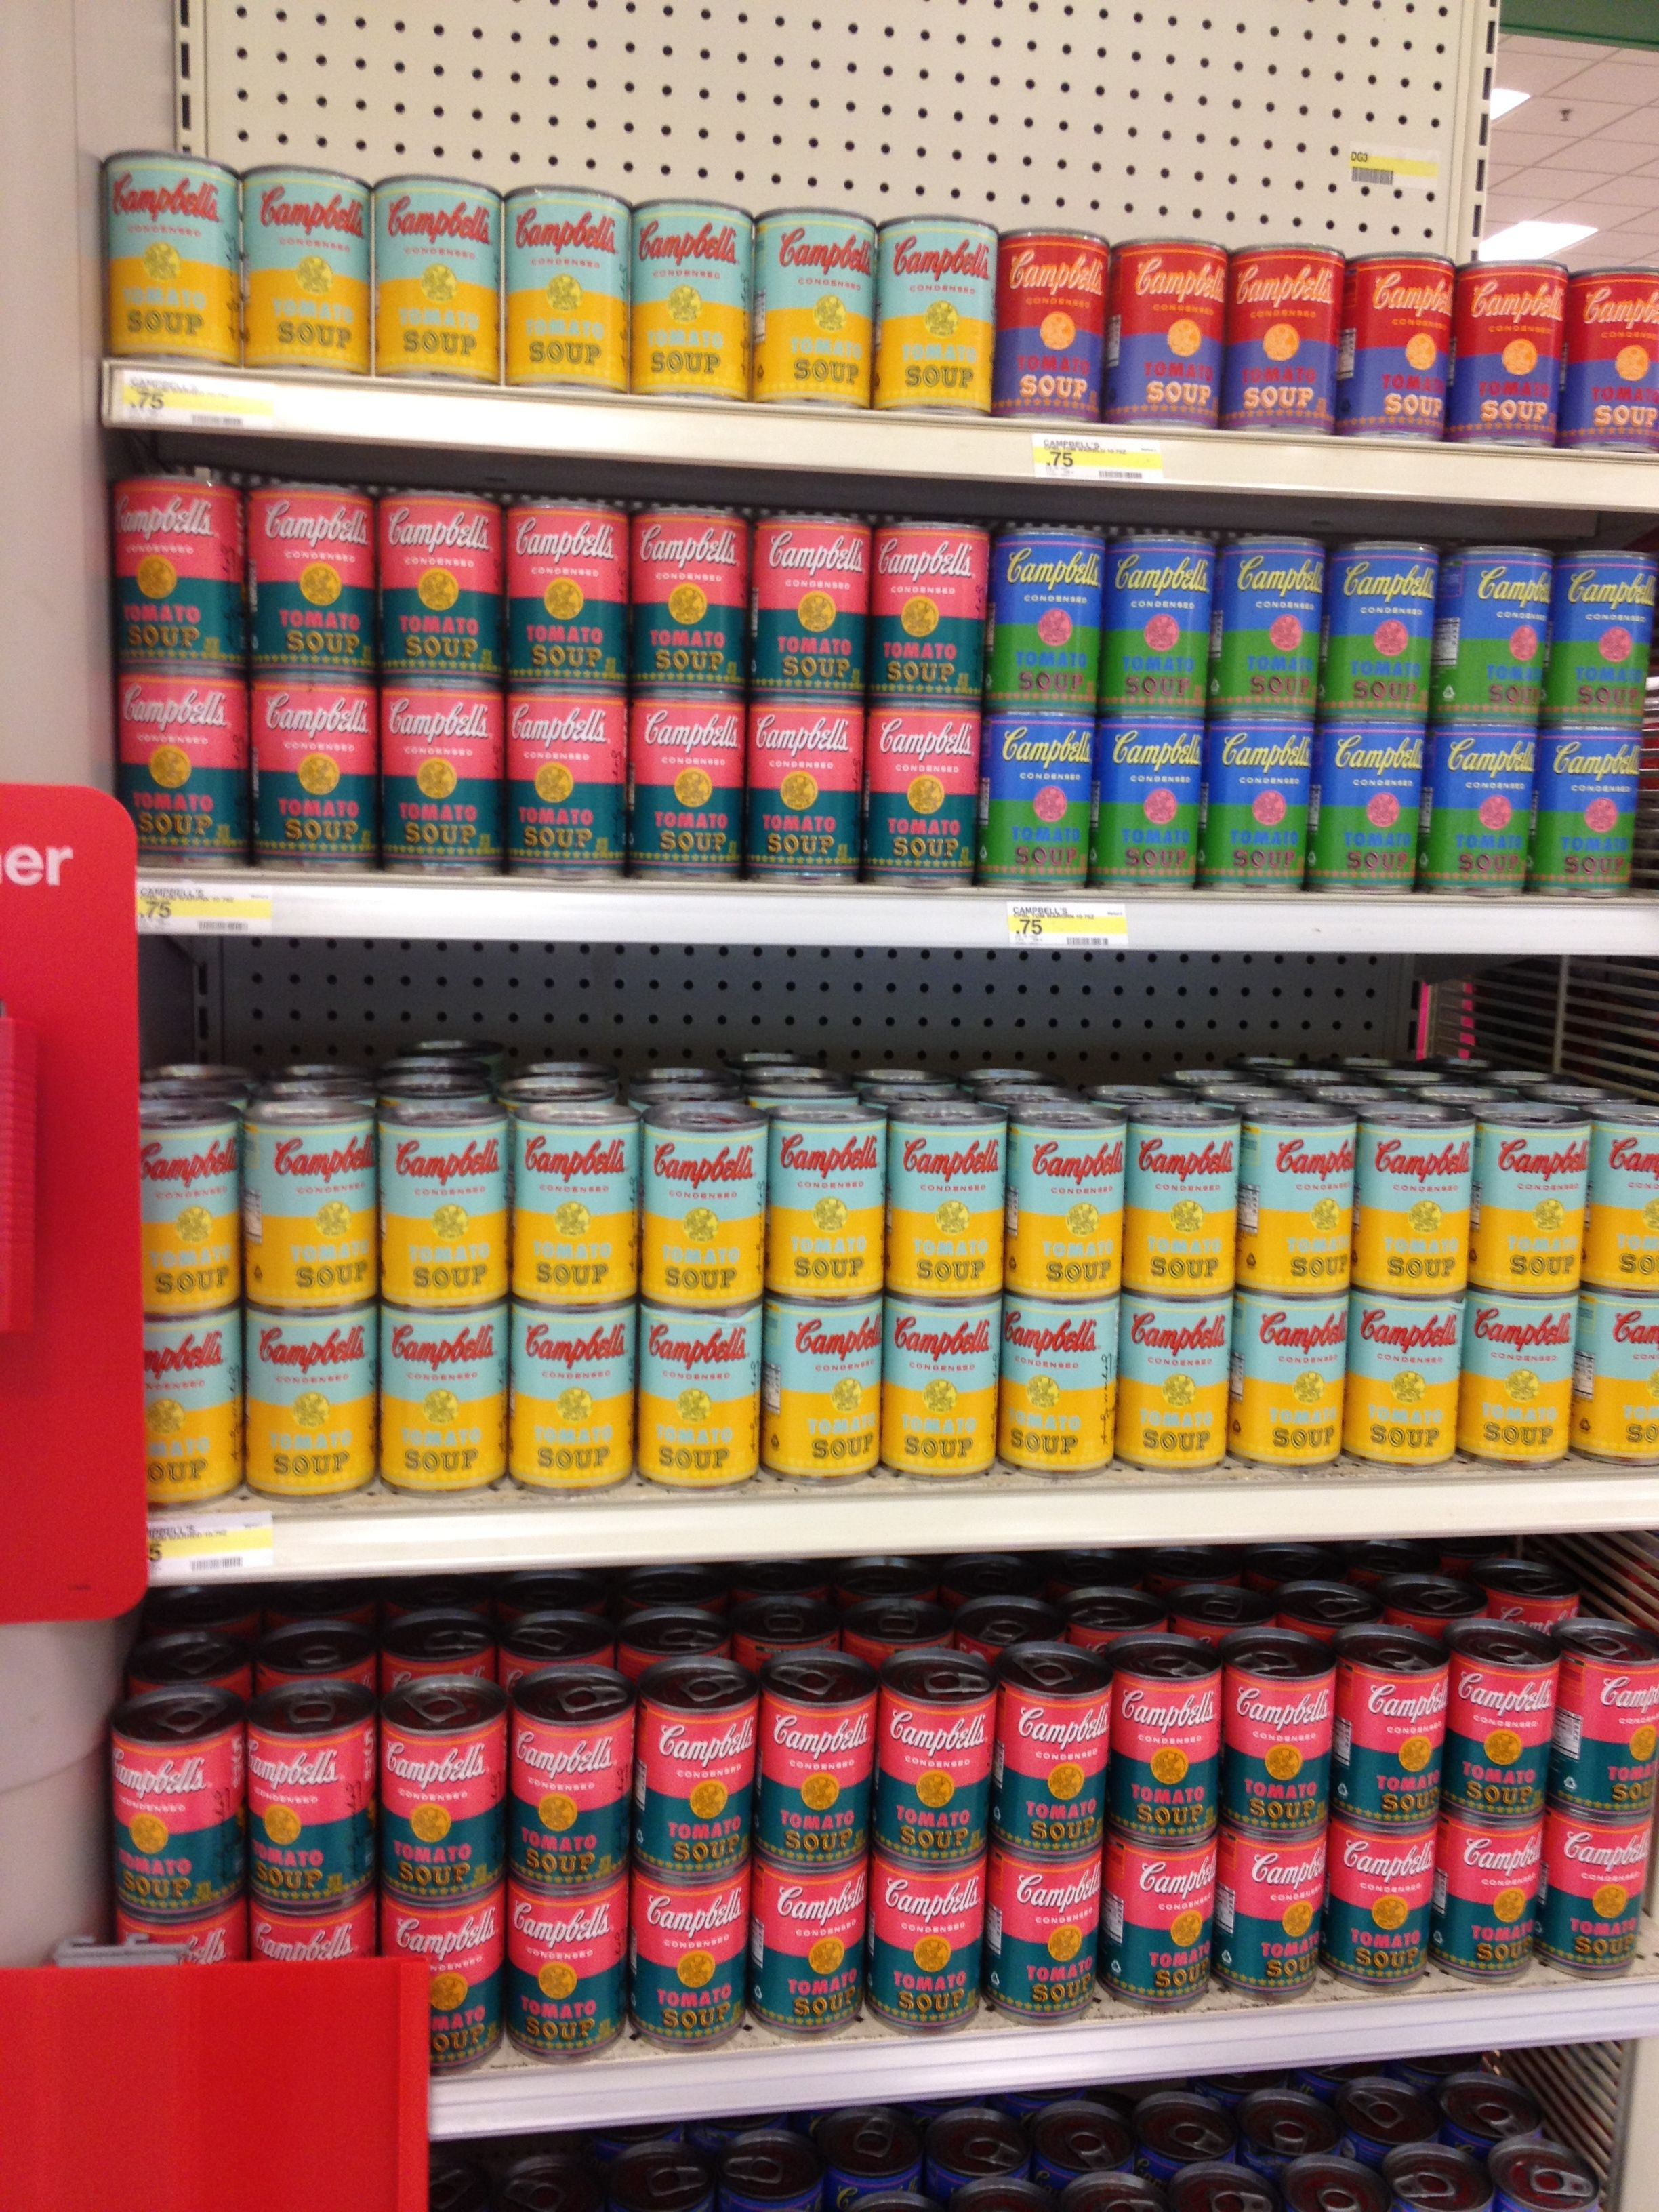 New Andy Warhol soup cans at Target